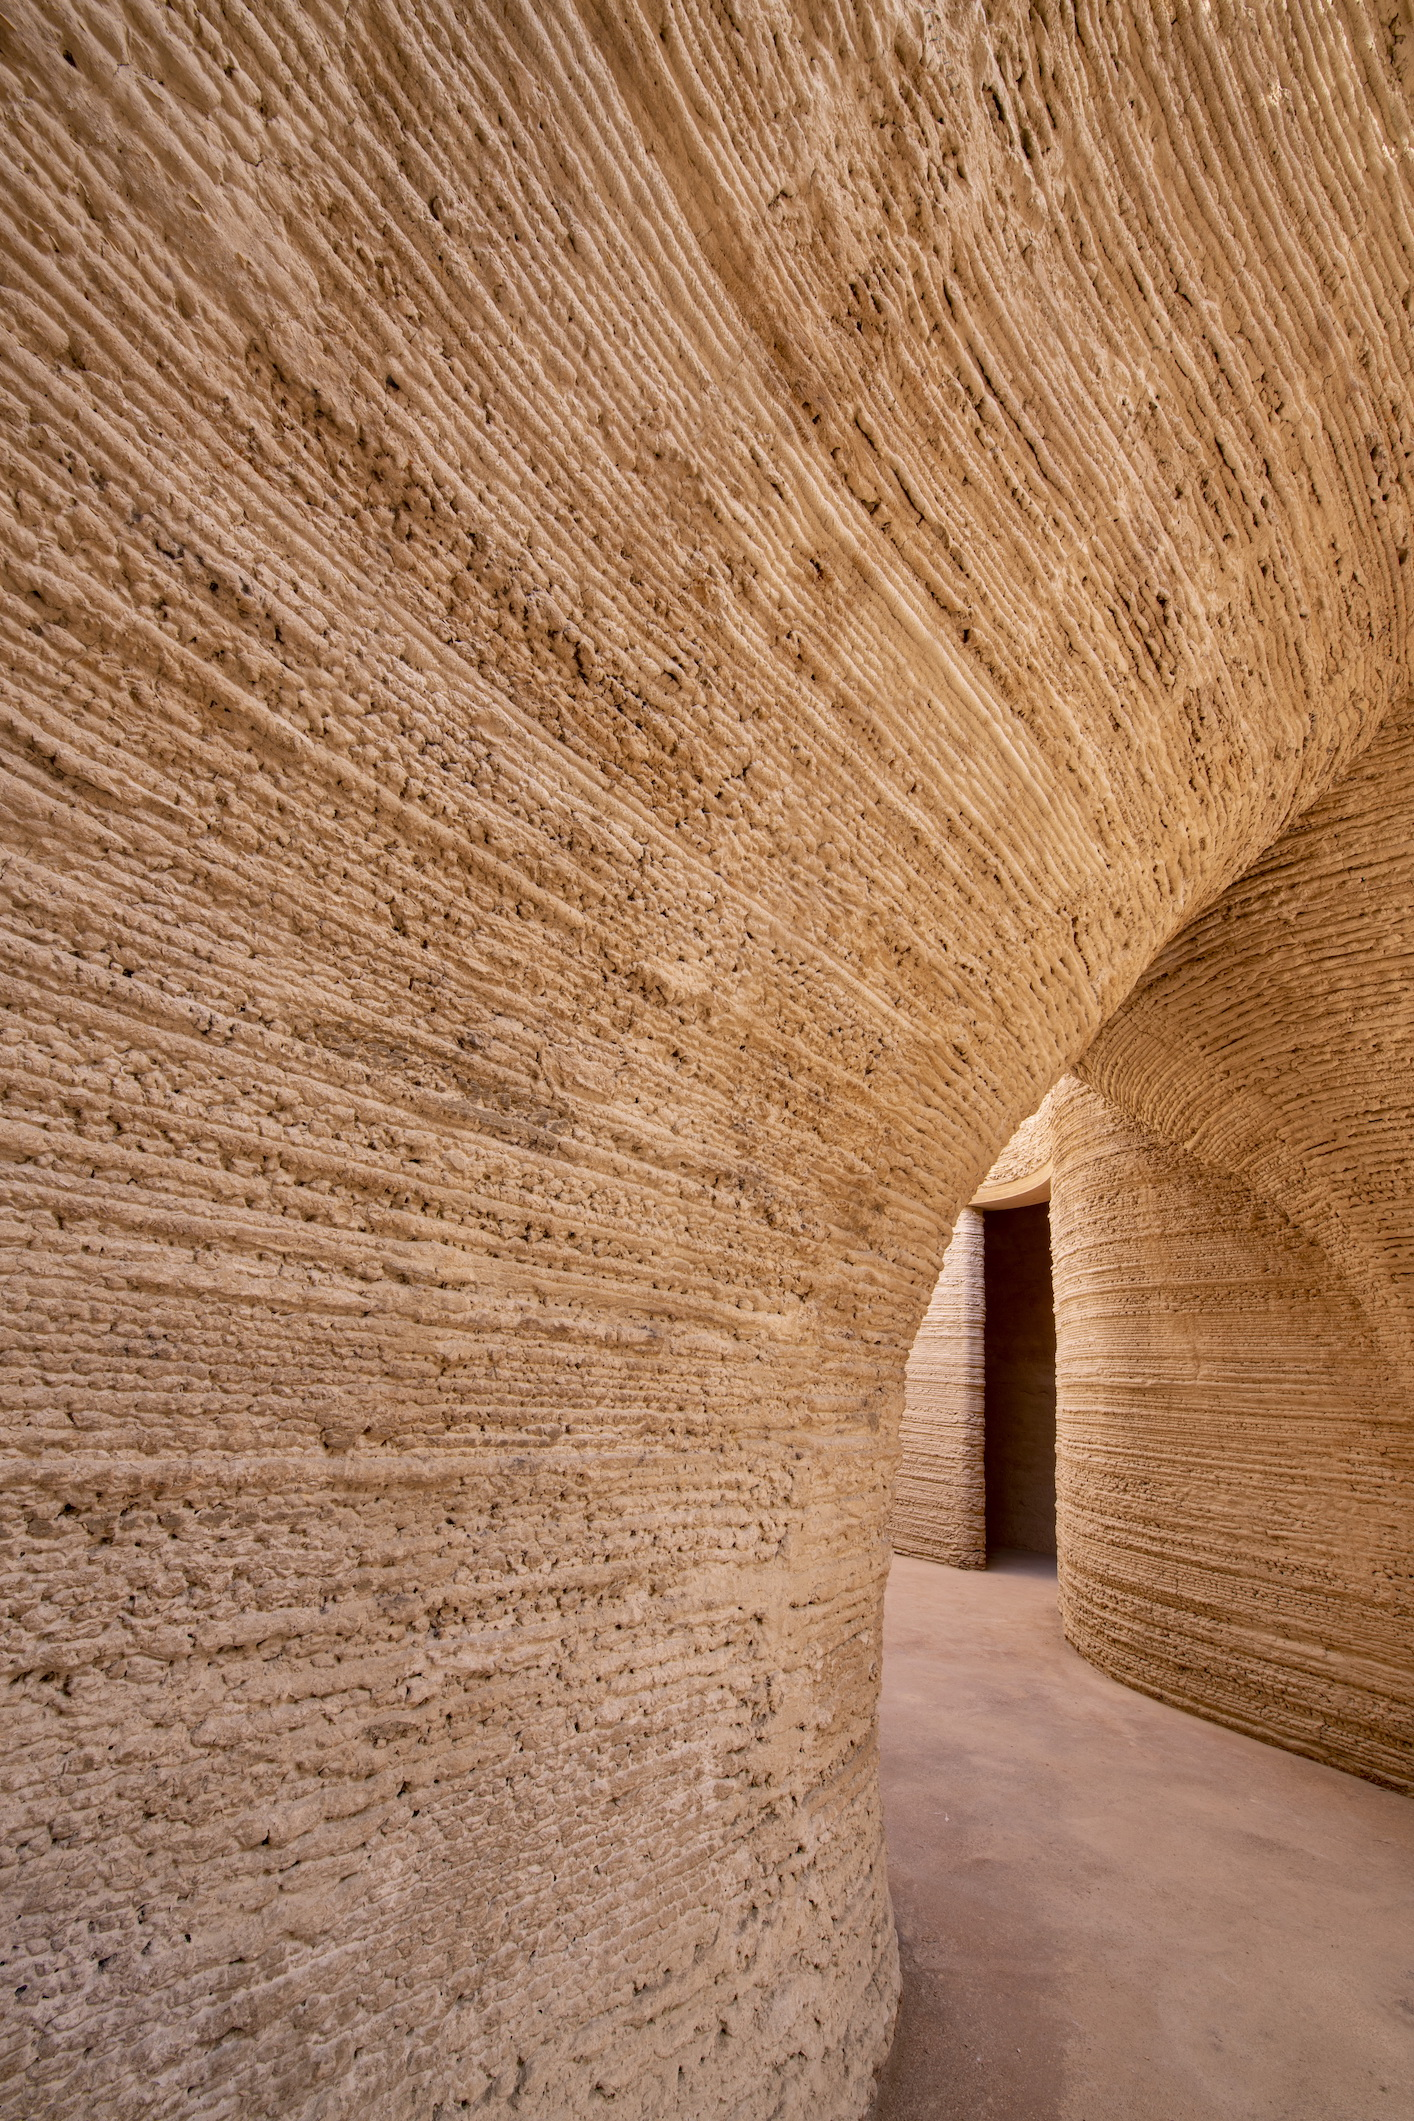 Mario Cucinella Architects, TECLA, Ravenna, 2021, Passage Detail from Living Room to Night Area, Photo by Iago Corazza